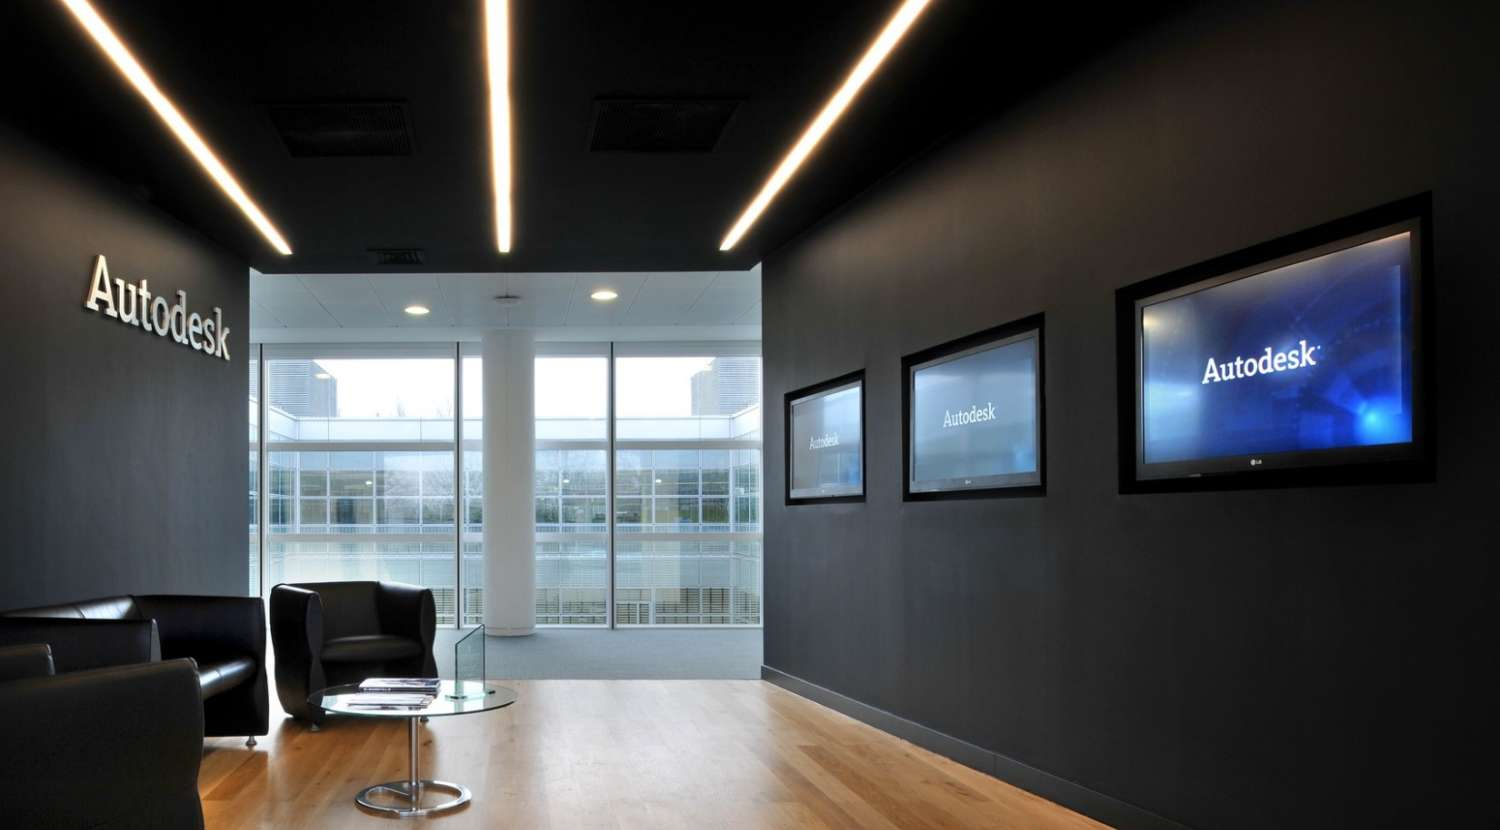 Client waiting area with large media screens